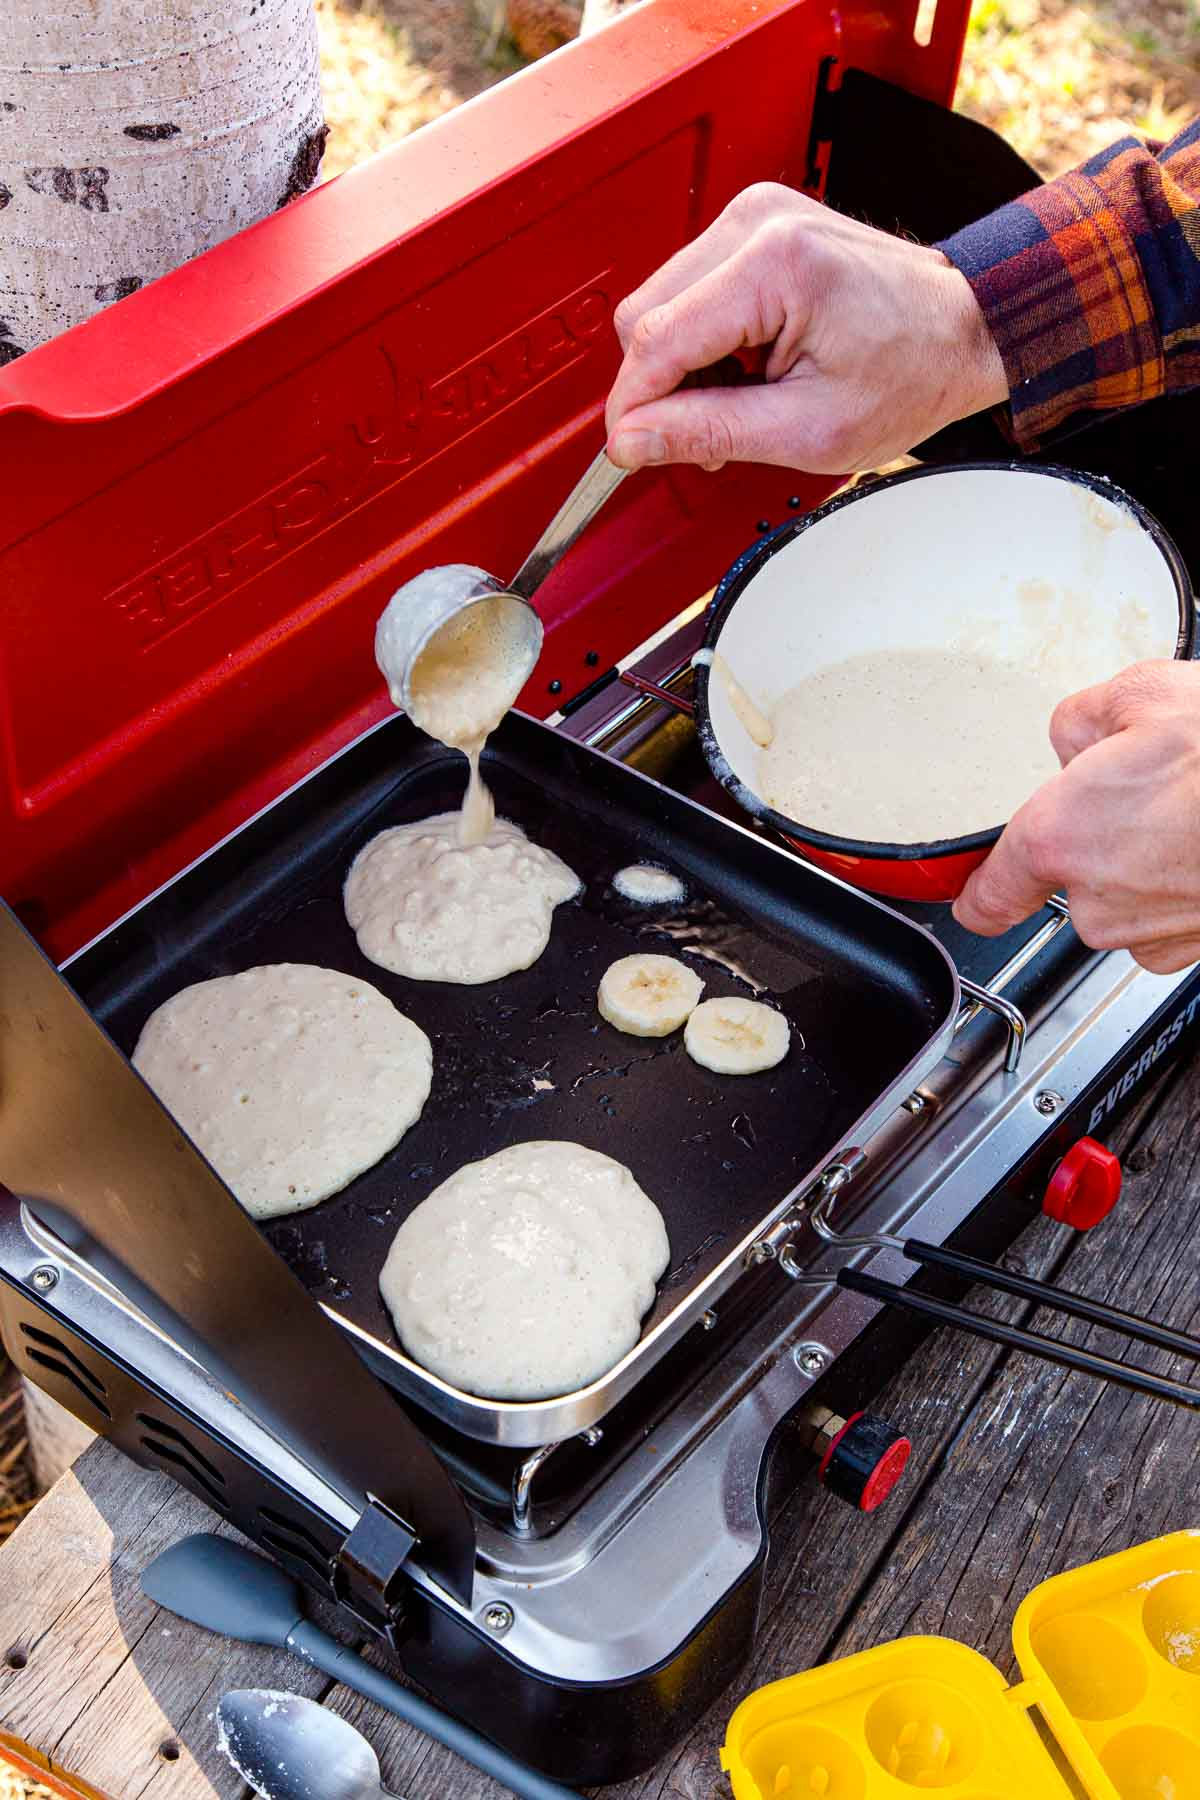 Michael adding pancake batter to a griddle on a camping stove